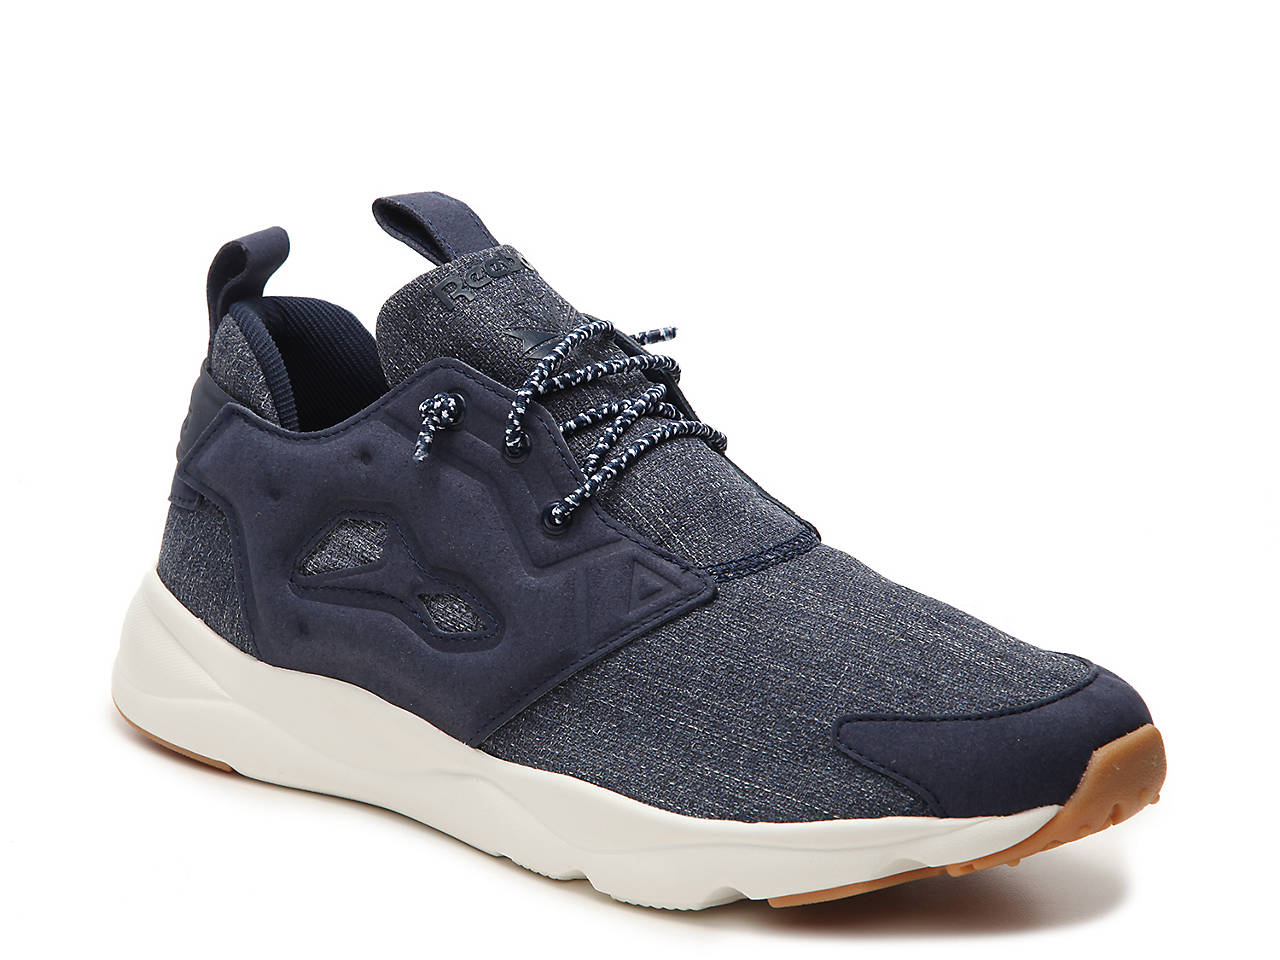 7570a7ad7952 Reebok Furylite Refine Slip-On Sneaker - Men s Men s Shoes